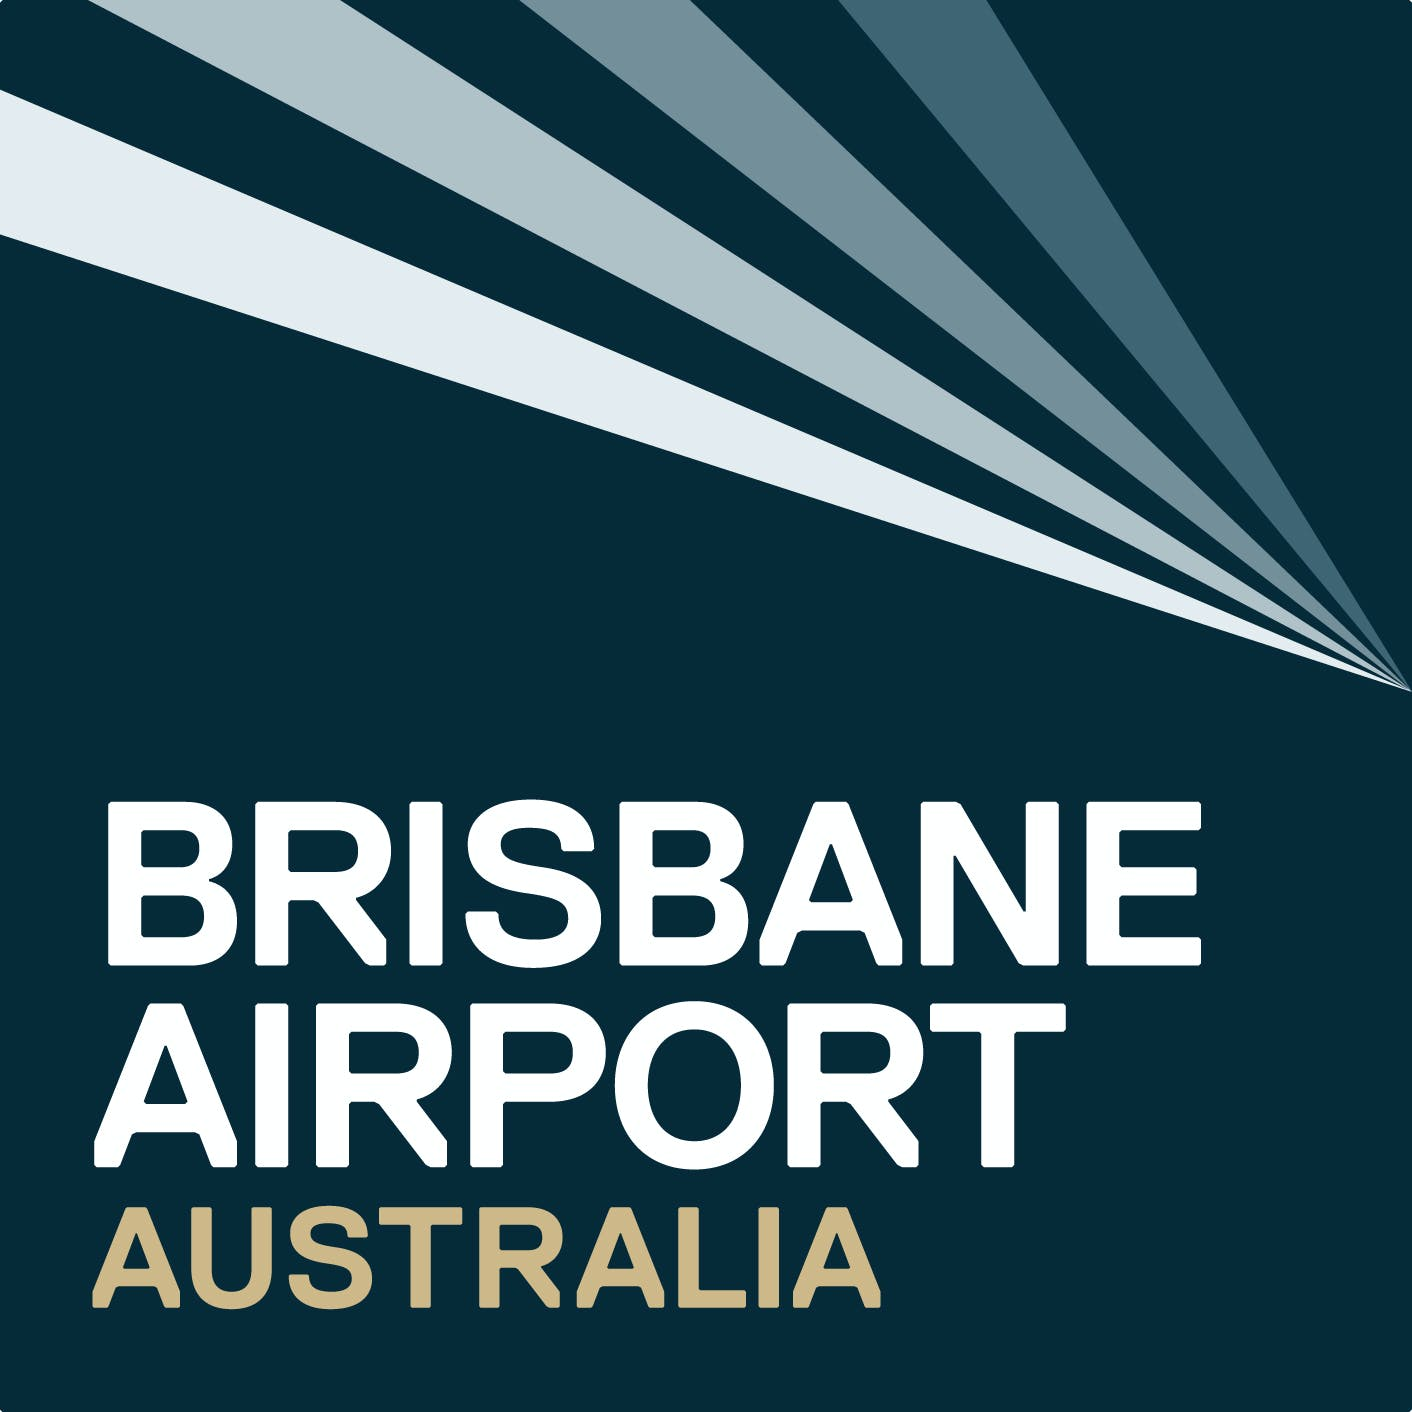 Brisbane Airport to Mapleton Springs B&B is 113km, approximately 1 h 20 min drive.